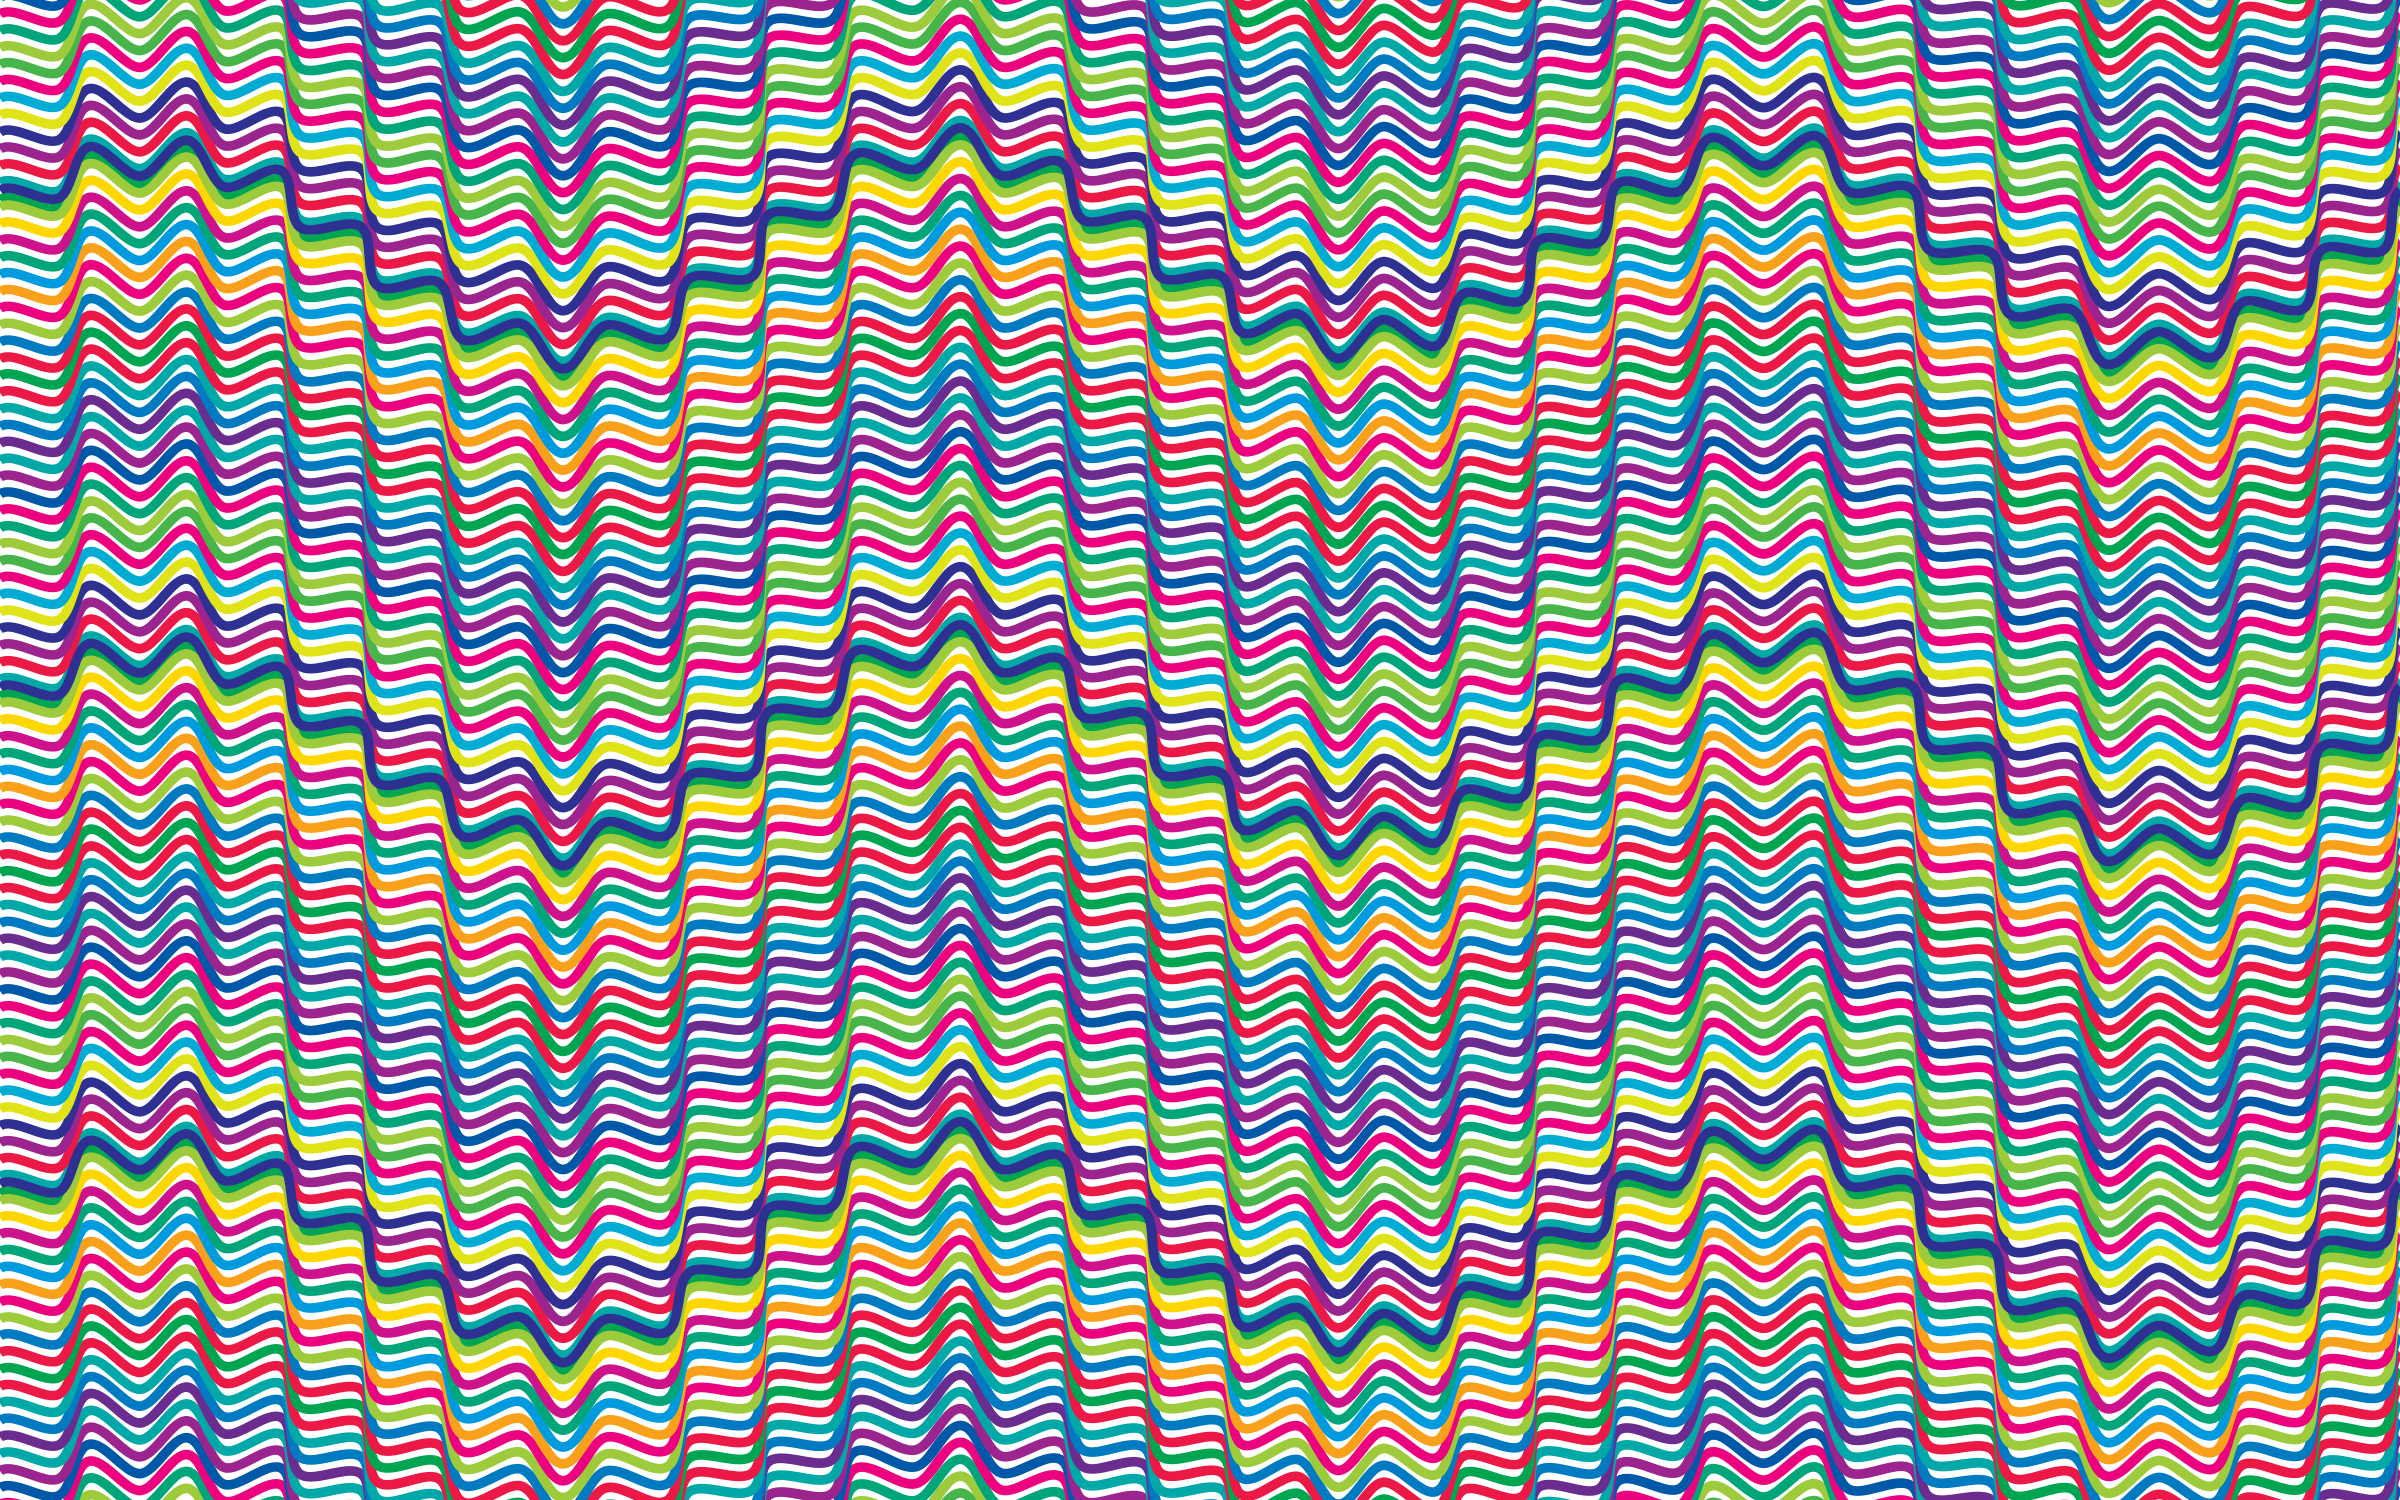 Prismatic Waves Background 2 No Background by GDJ